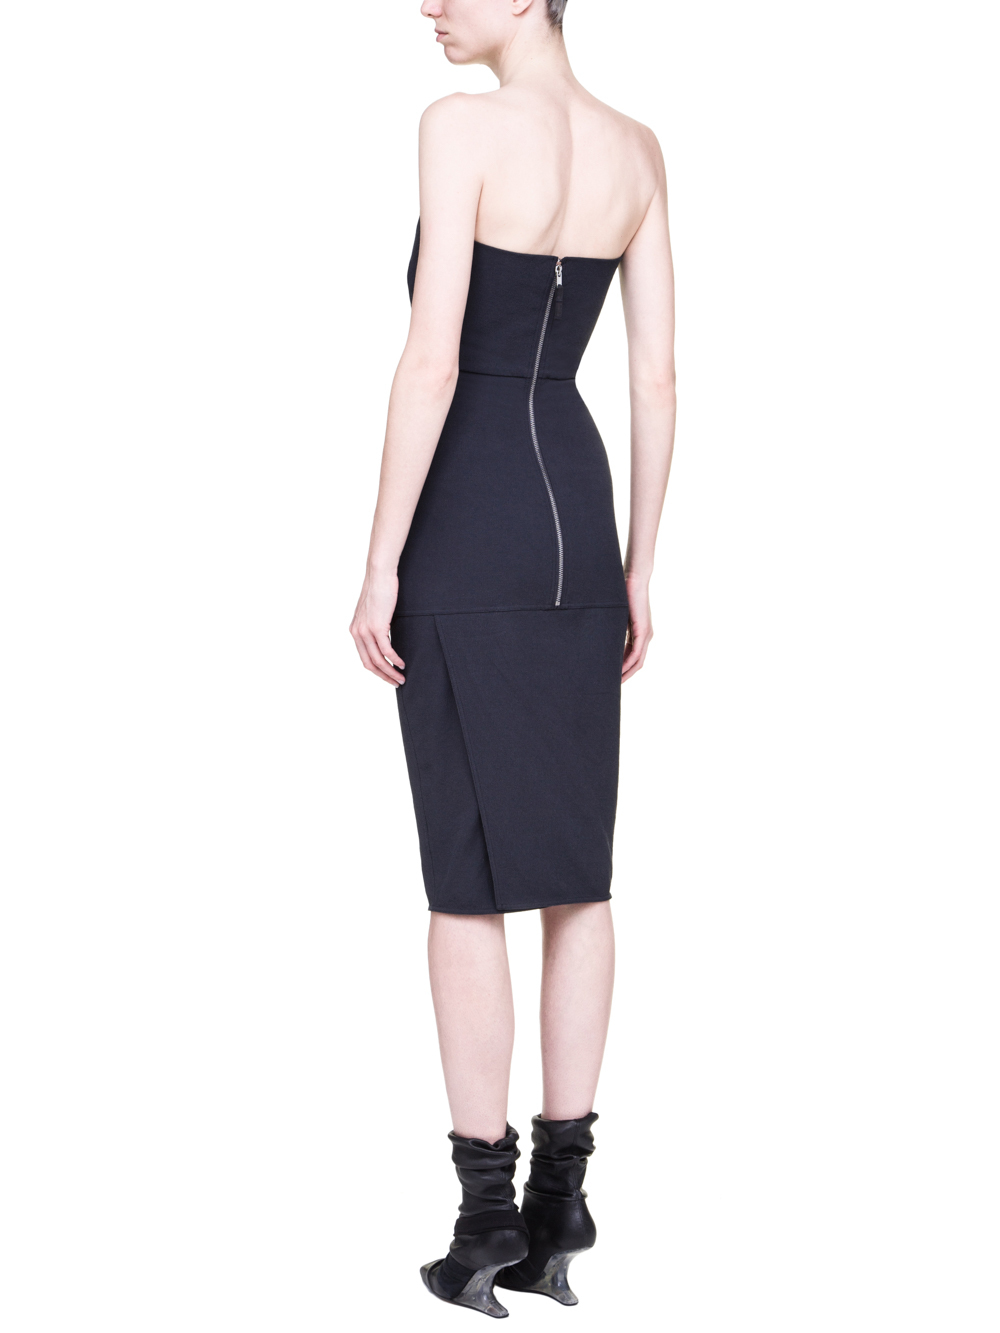 RICK OWENS SS19 BABEL BUSTIER DRESS IN BLUEJAY BLUE